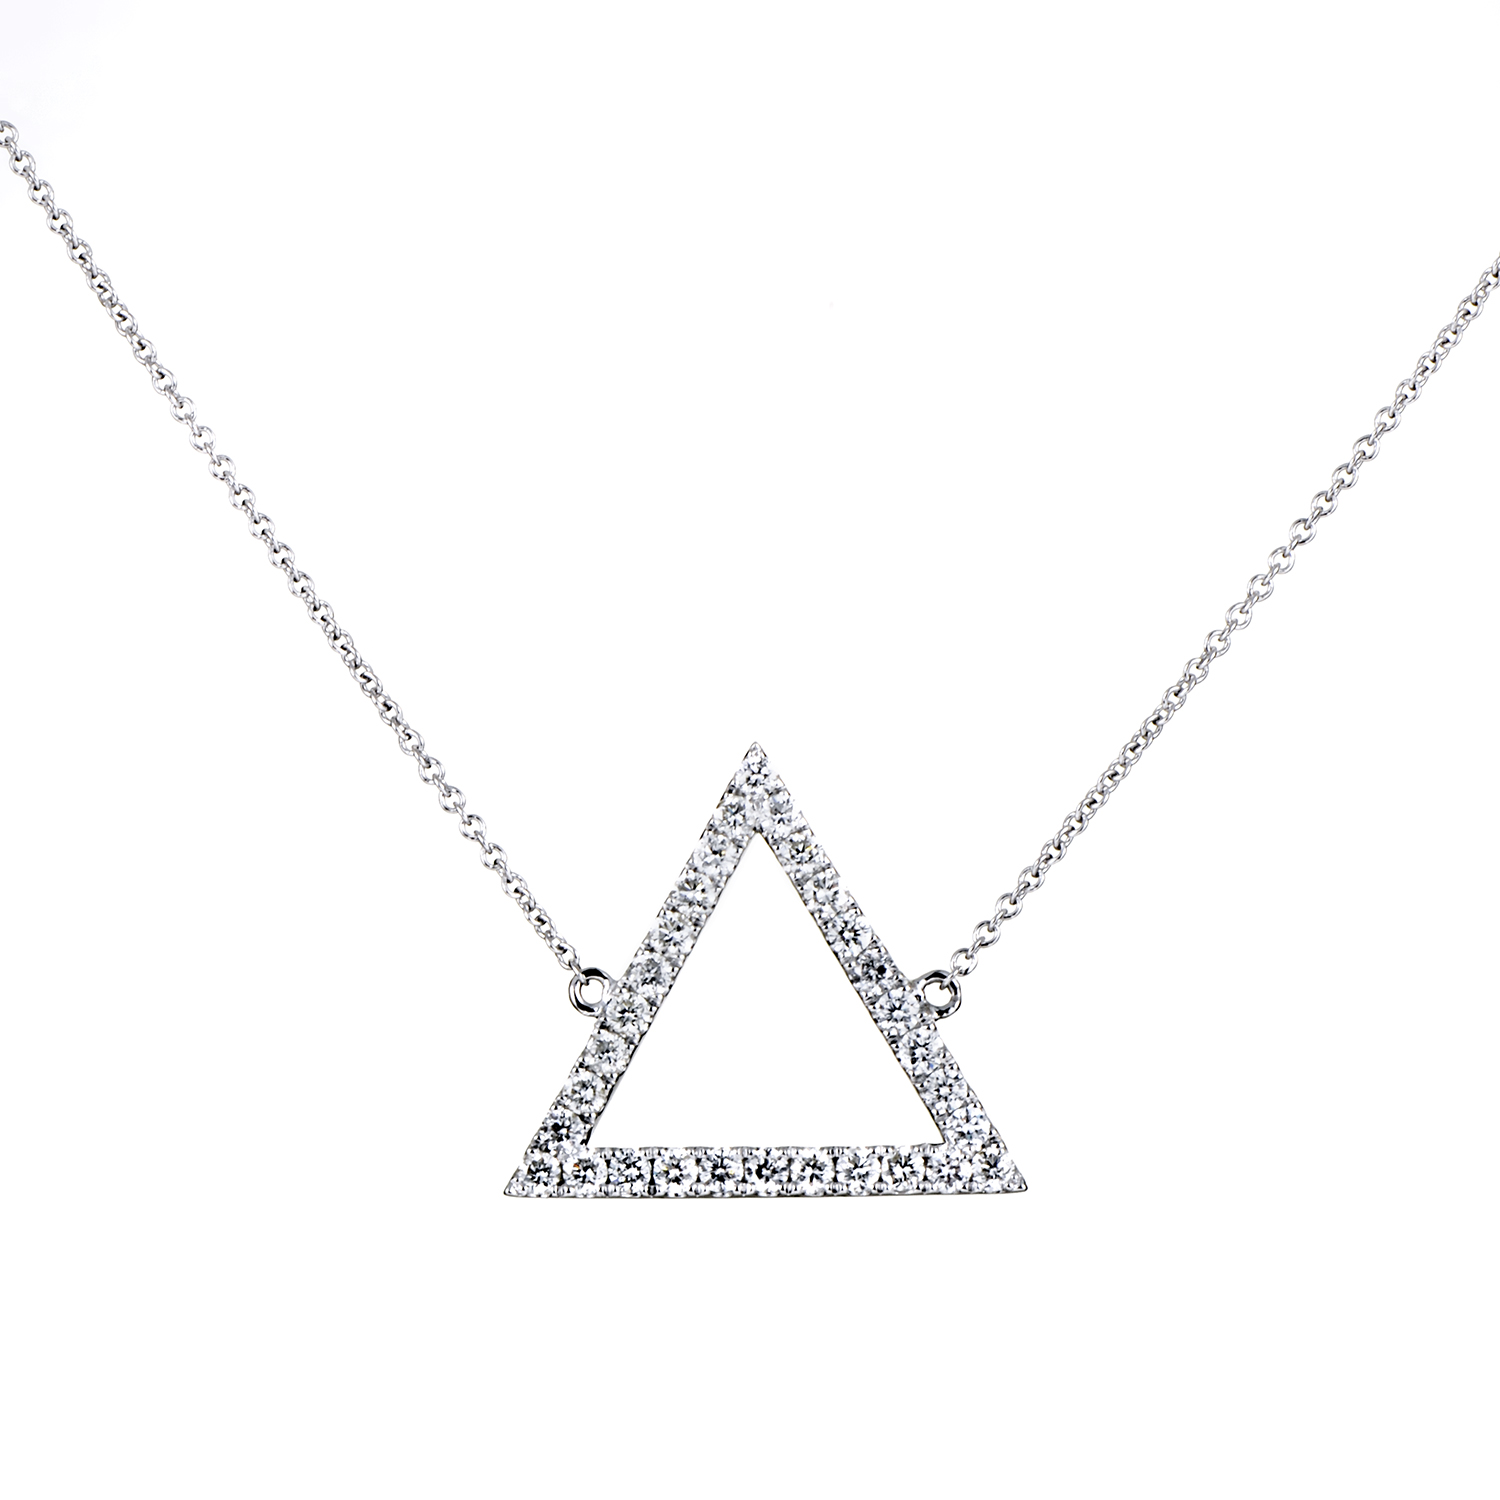 Women's 18K White Gold Diamond Pave Triangle Pendant Necklace